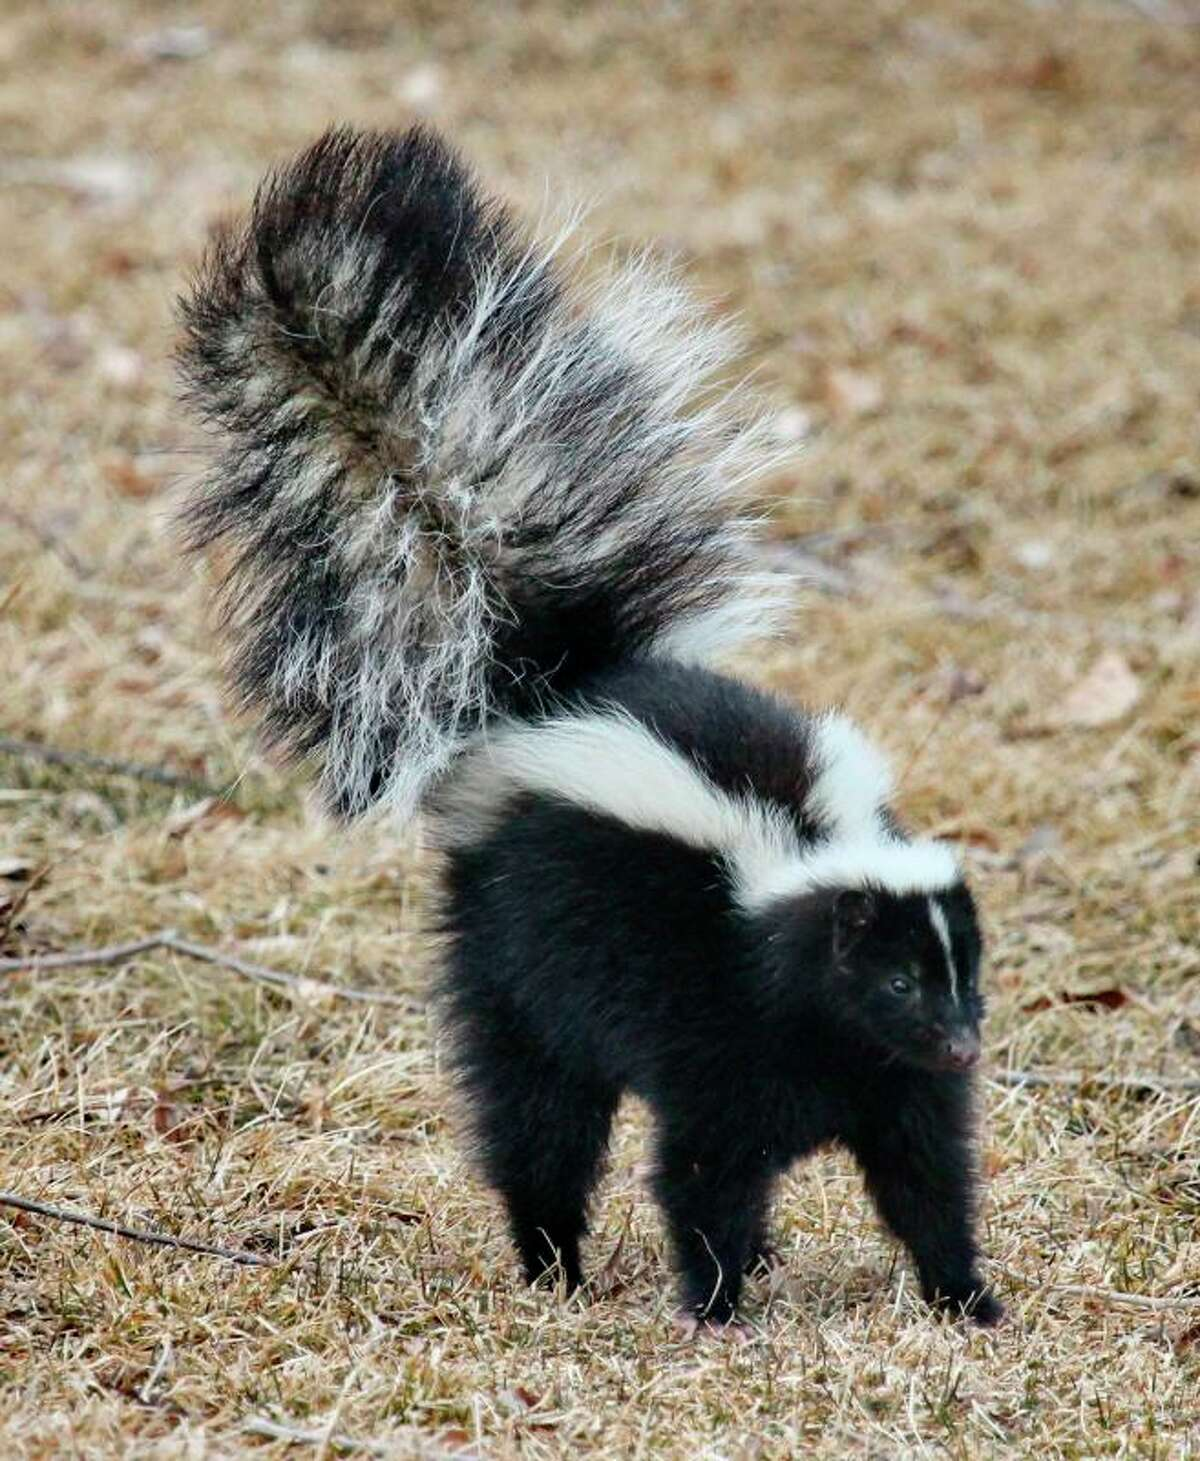 FILE - Monroe's animal control officers reportedly euthanized a skunk that was found in the front yard of a Yankee Hill Road residence on March 3, 2020. (Wallace Keck/National Park Service via AP)